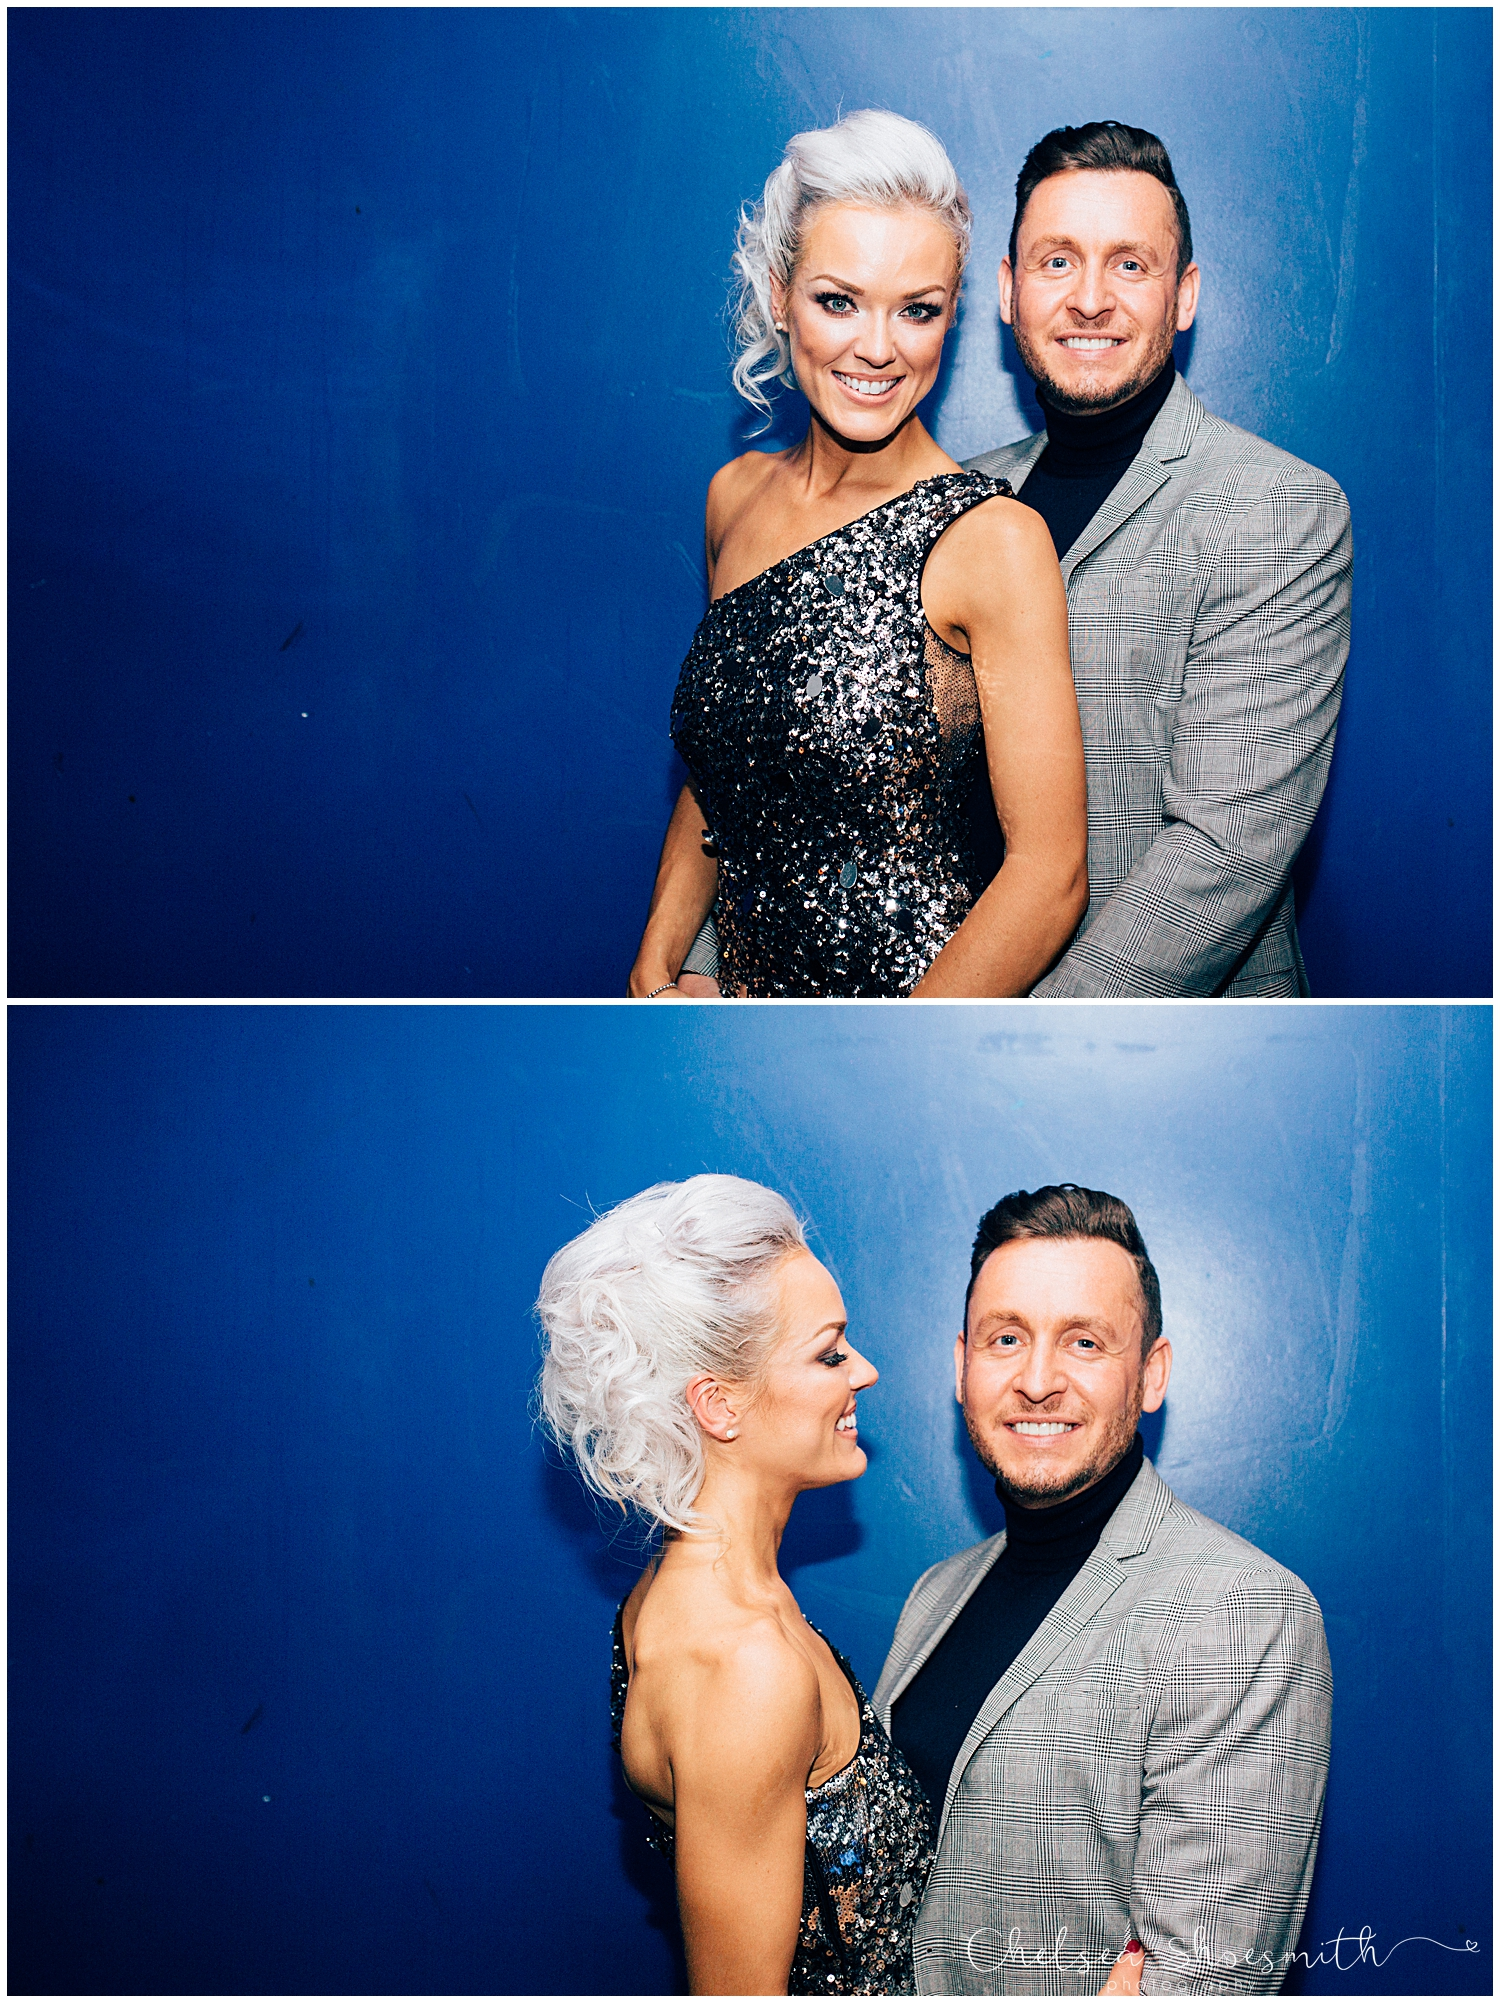 Ed & Caithy Engagement Party Black Dog Ball Room Manchester -54